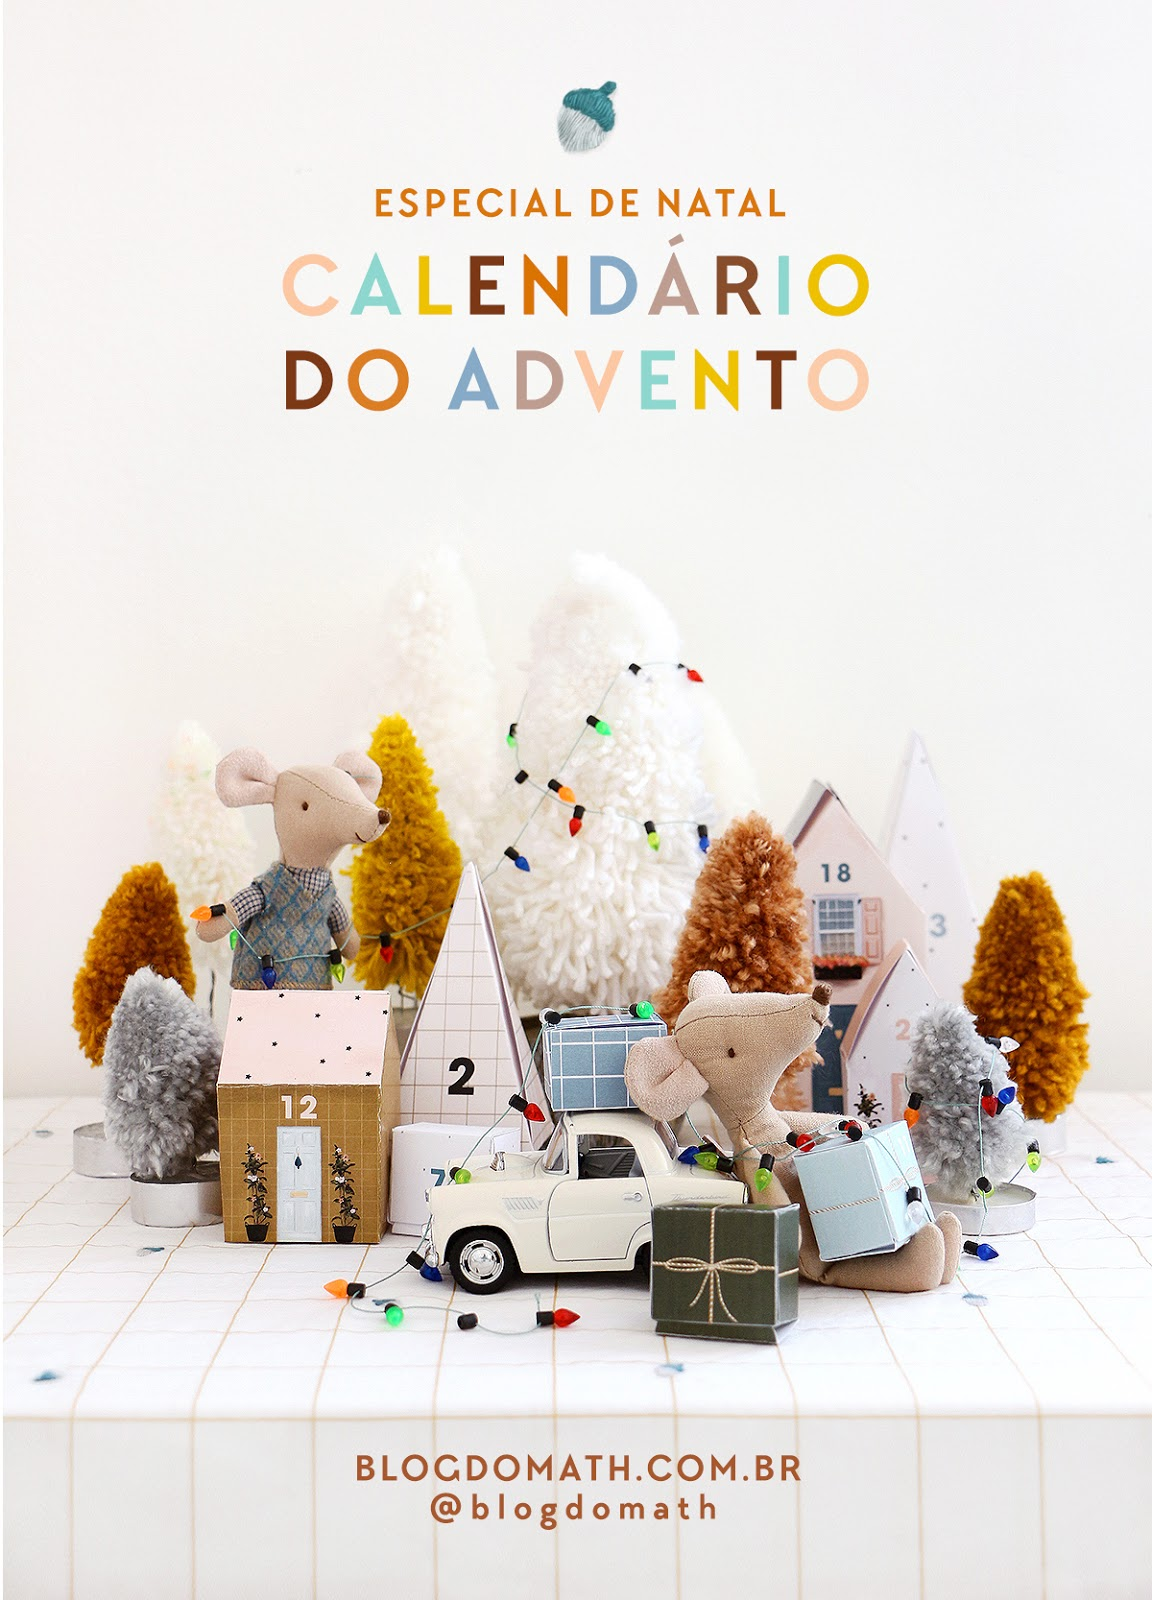 decoracao de natal tons terrosos DIY pinheiros de lã pompom faca voce mesmo earty thones brown olive christmas villagem paper decor blog do math